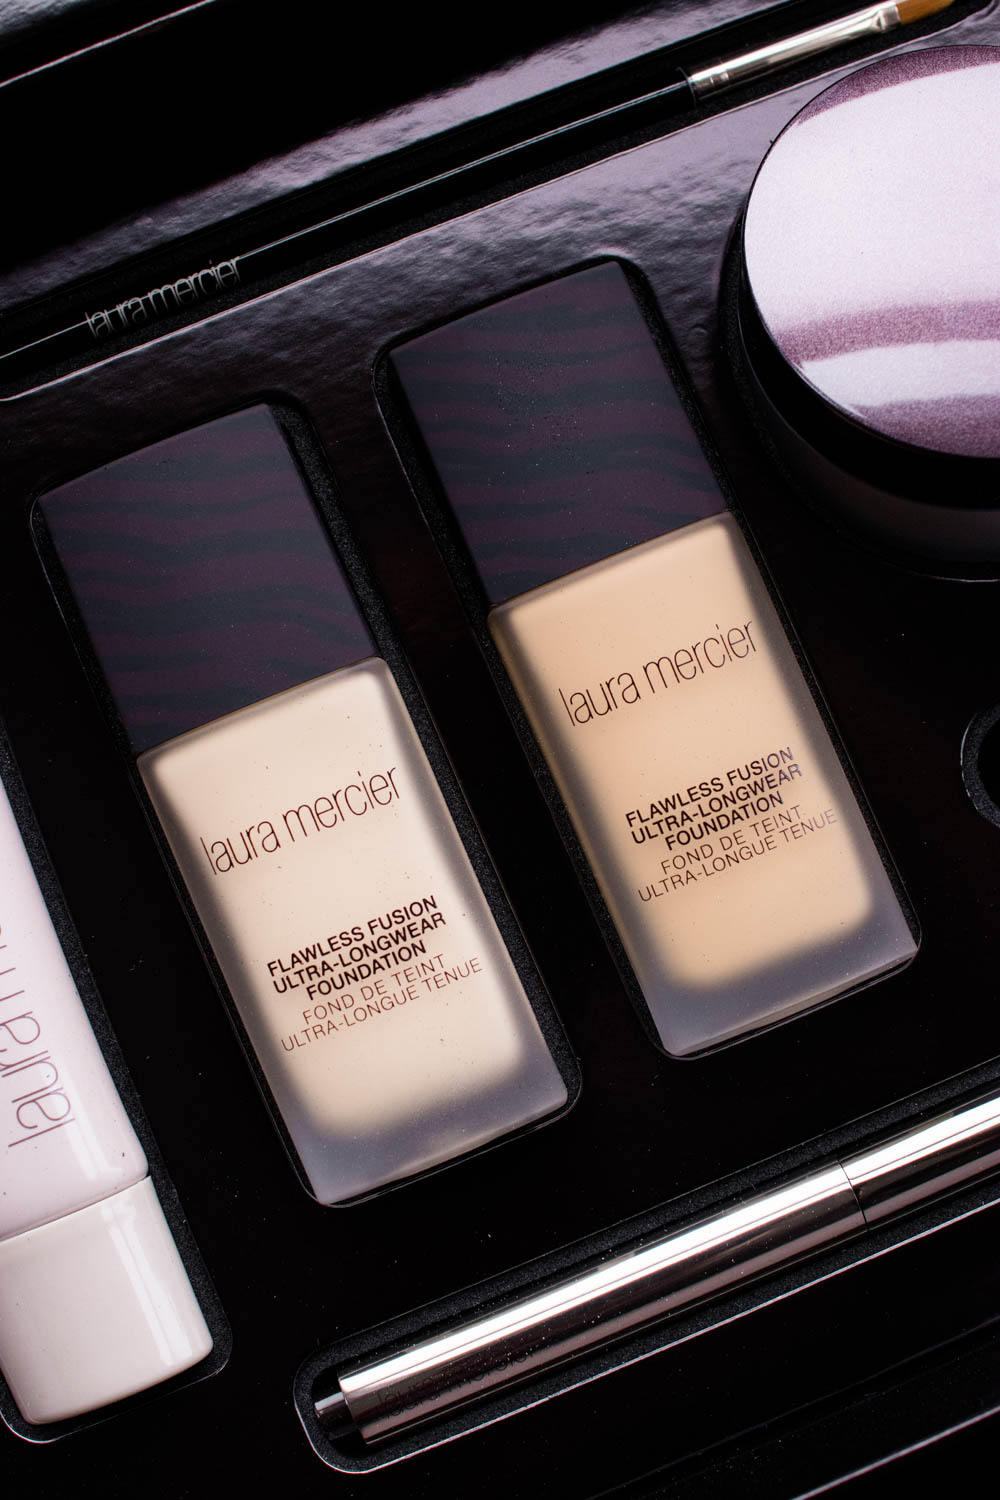 LAURA MERCIER Flawless Fusion Ultra-Longwear Foundation Review Swatches | The Beauty Review | The Beauty Vanity